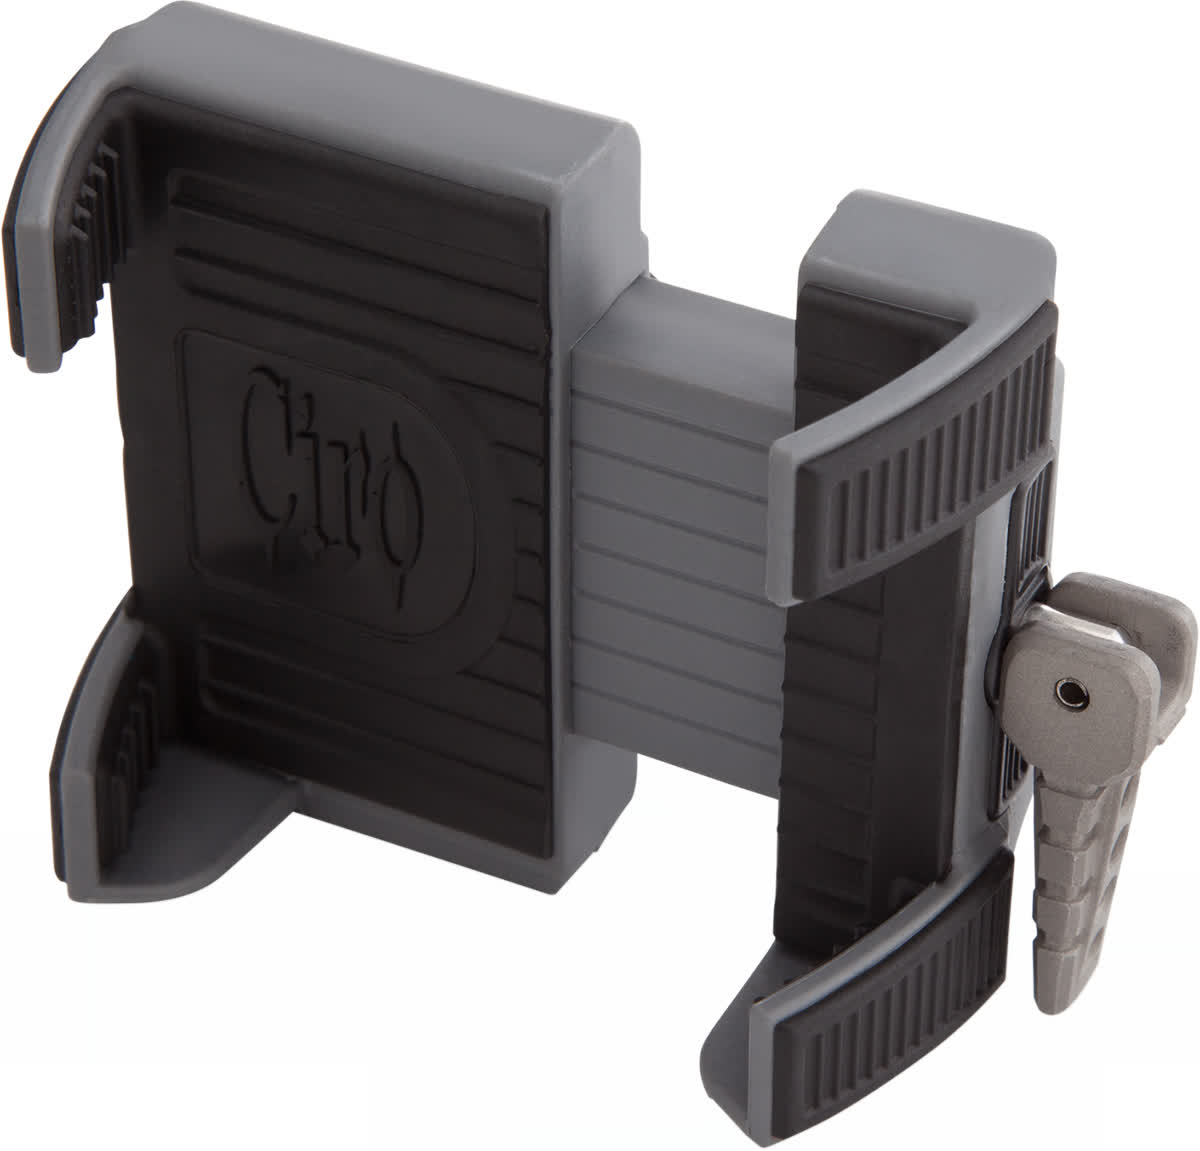 Ciro 50000 Smartphone Holder w/ Charger  No Mount